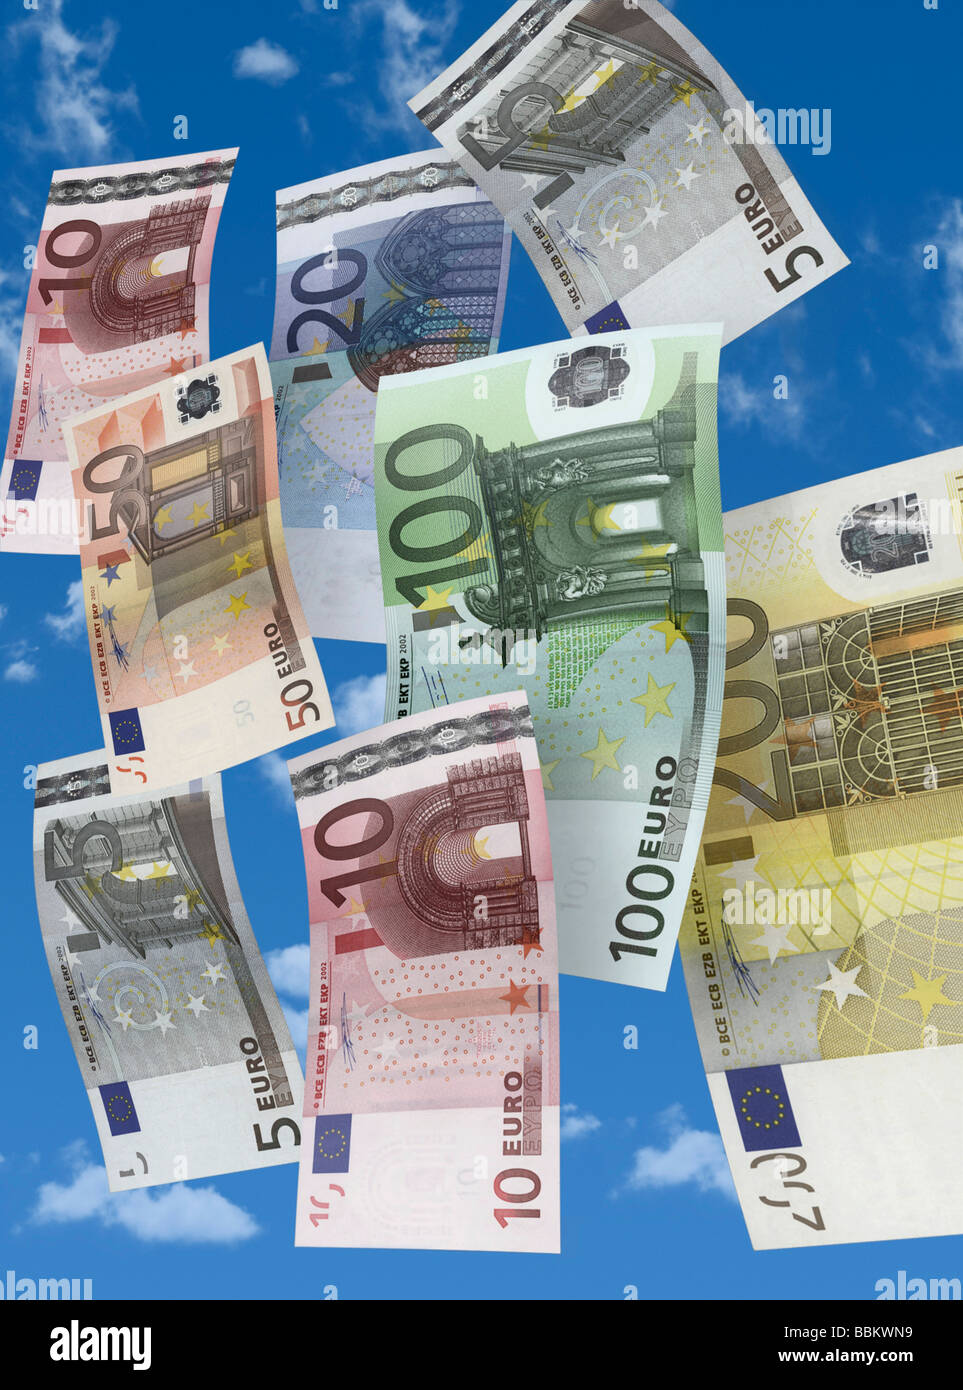 Banknotes raining down from the sky Stock Photo